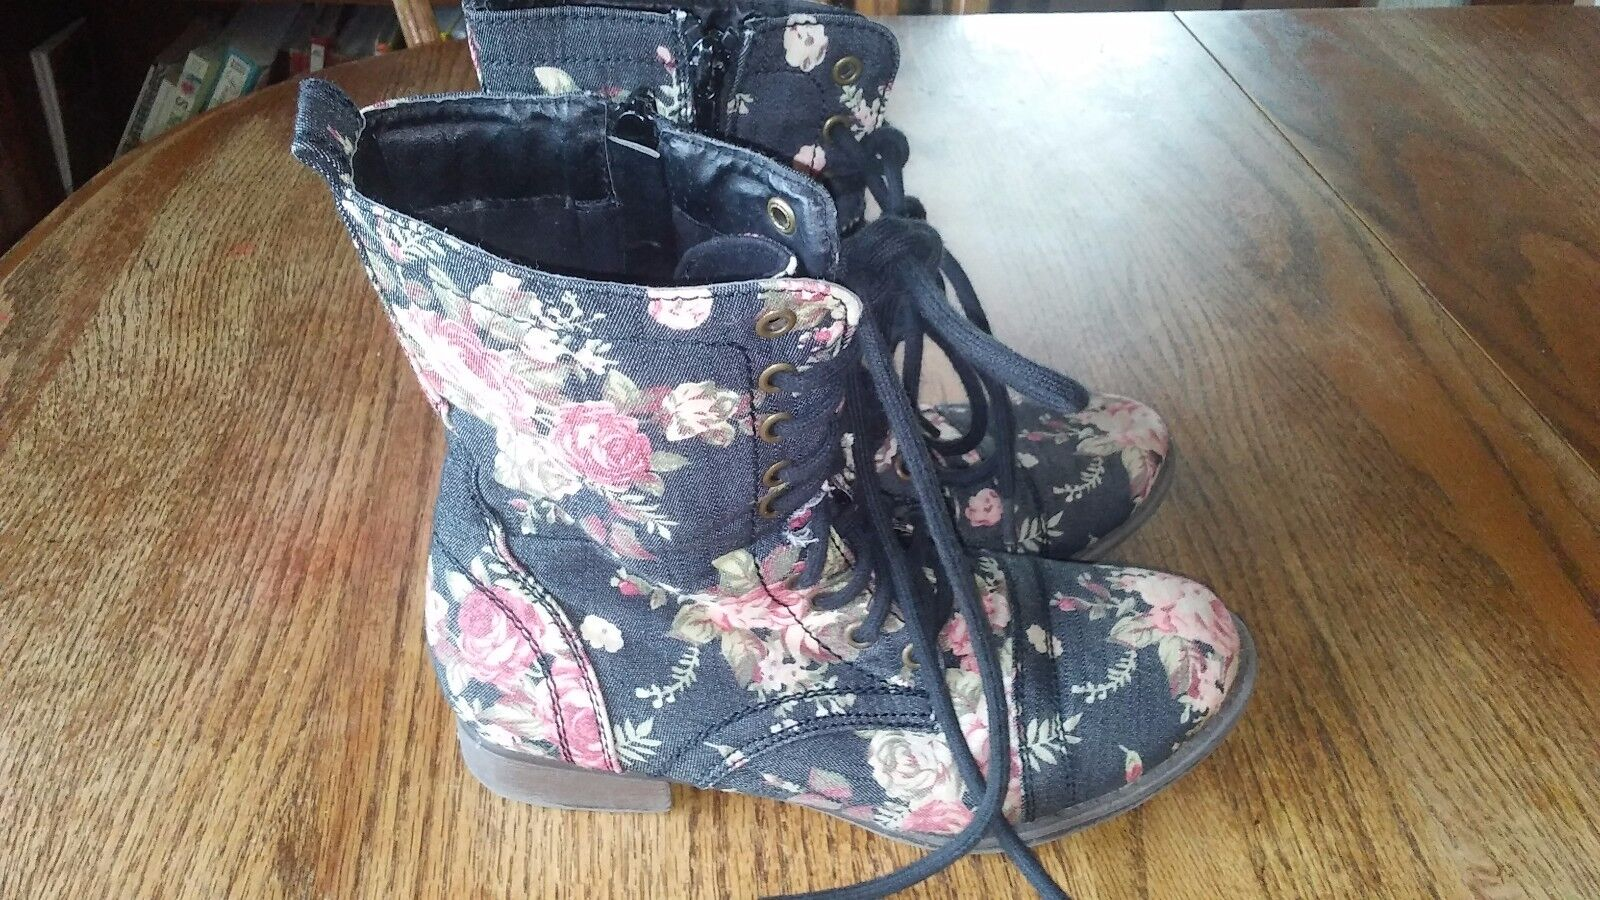 Aeropostale women's Lace up with Zipper boots Size 6 Black Pink Floral Canvas